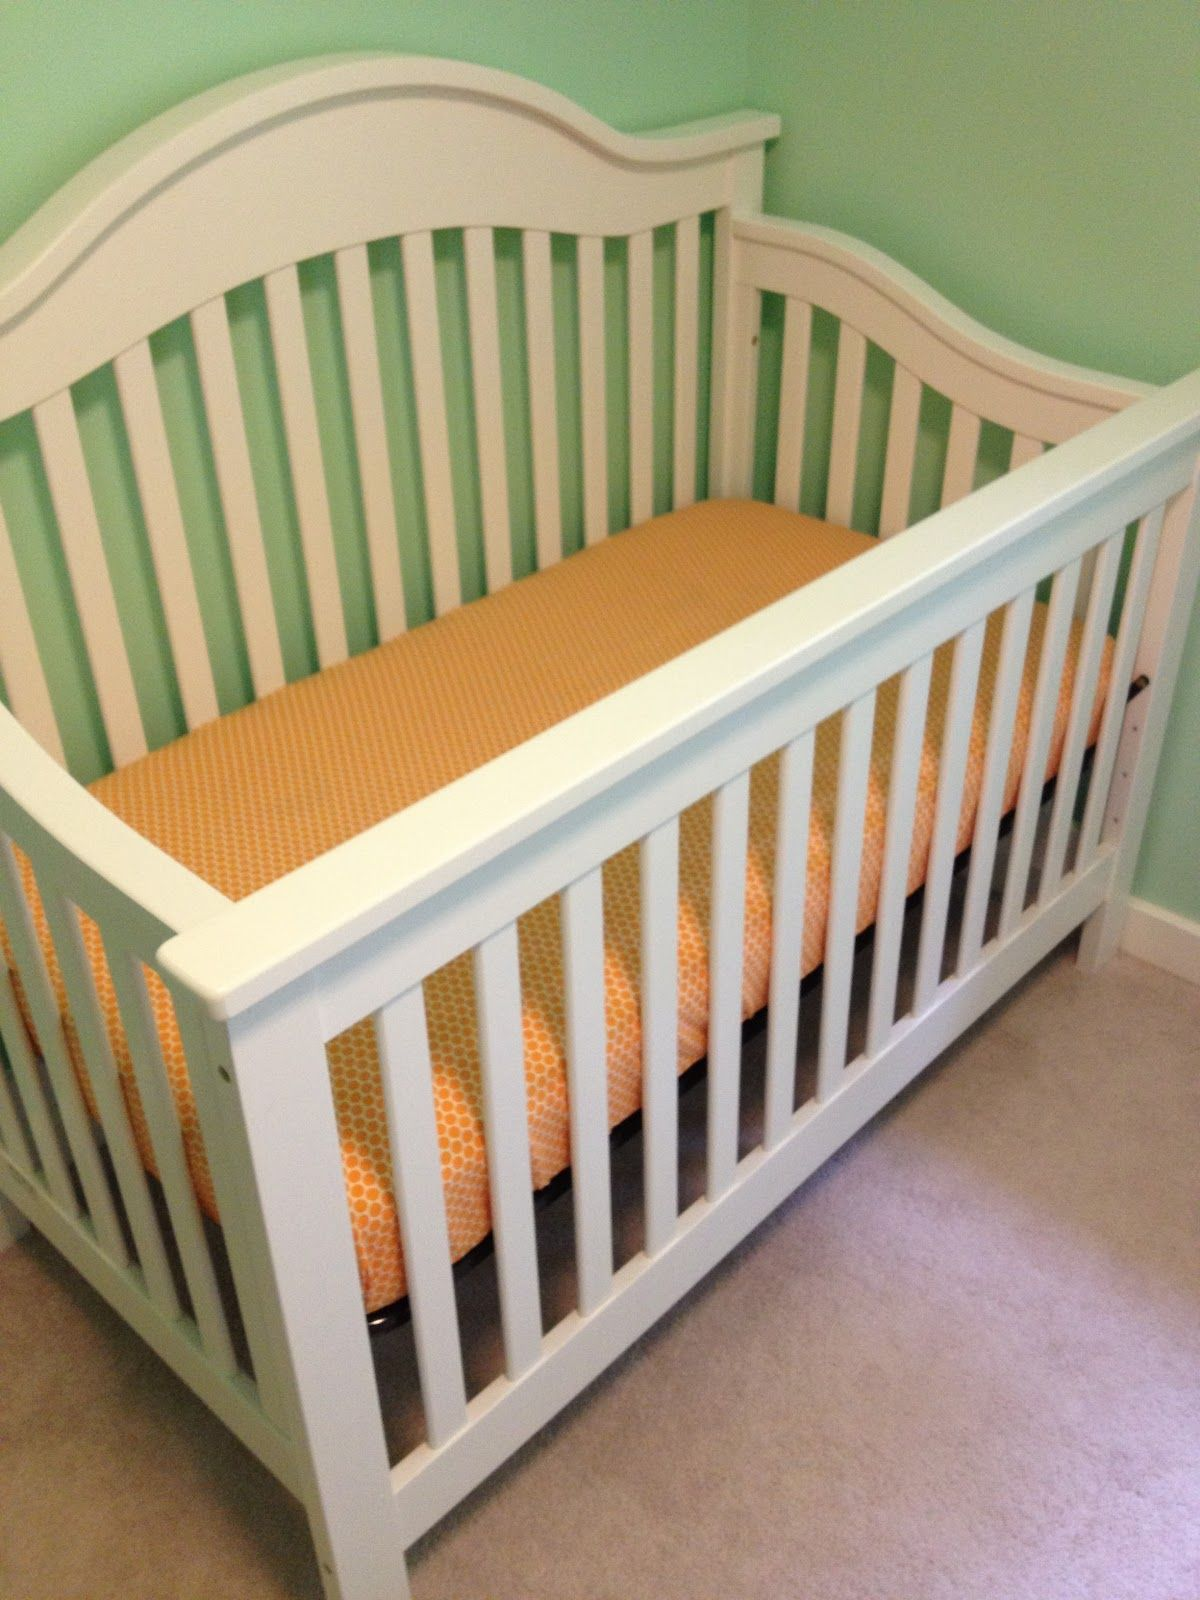 Baby bed sheet pattern - Rootandblossom Fitted Crib Sheet Tutorial Holy Crap This Woman Uses French Seams On Her Baby Sheets